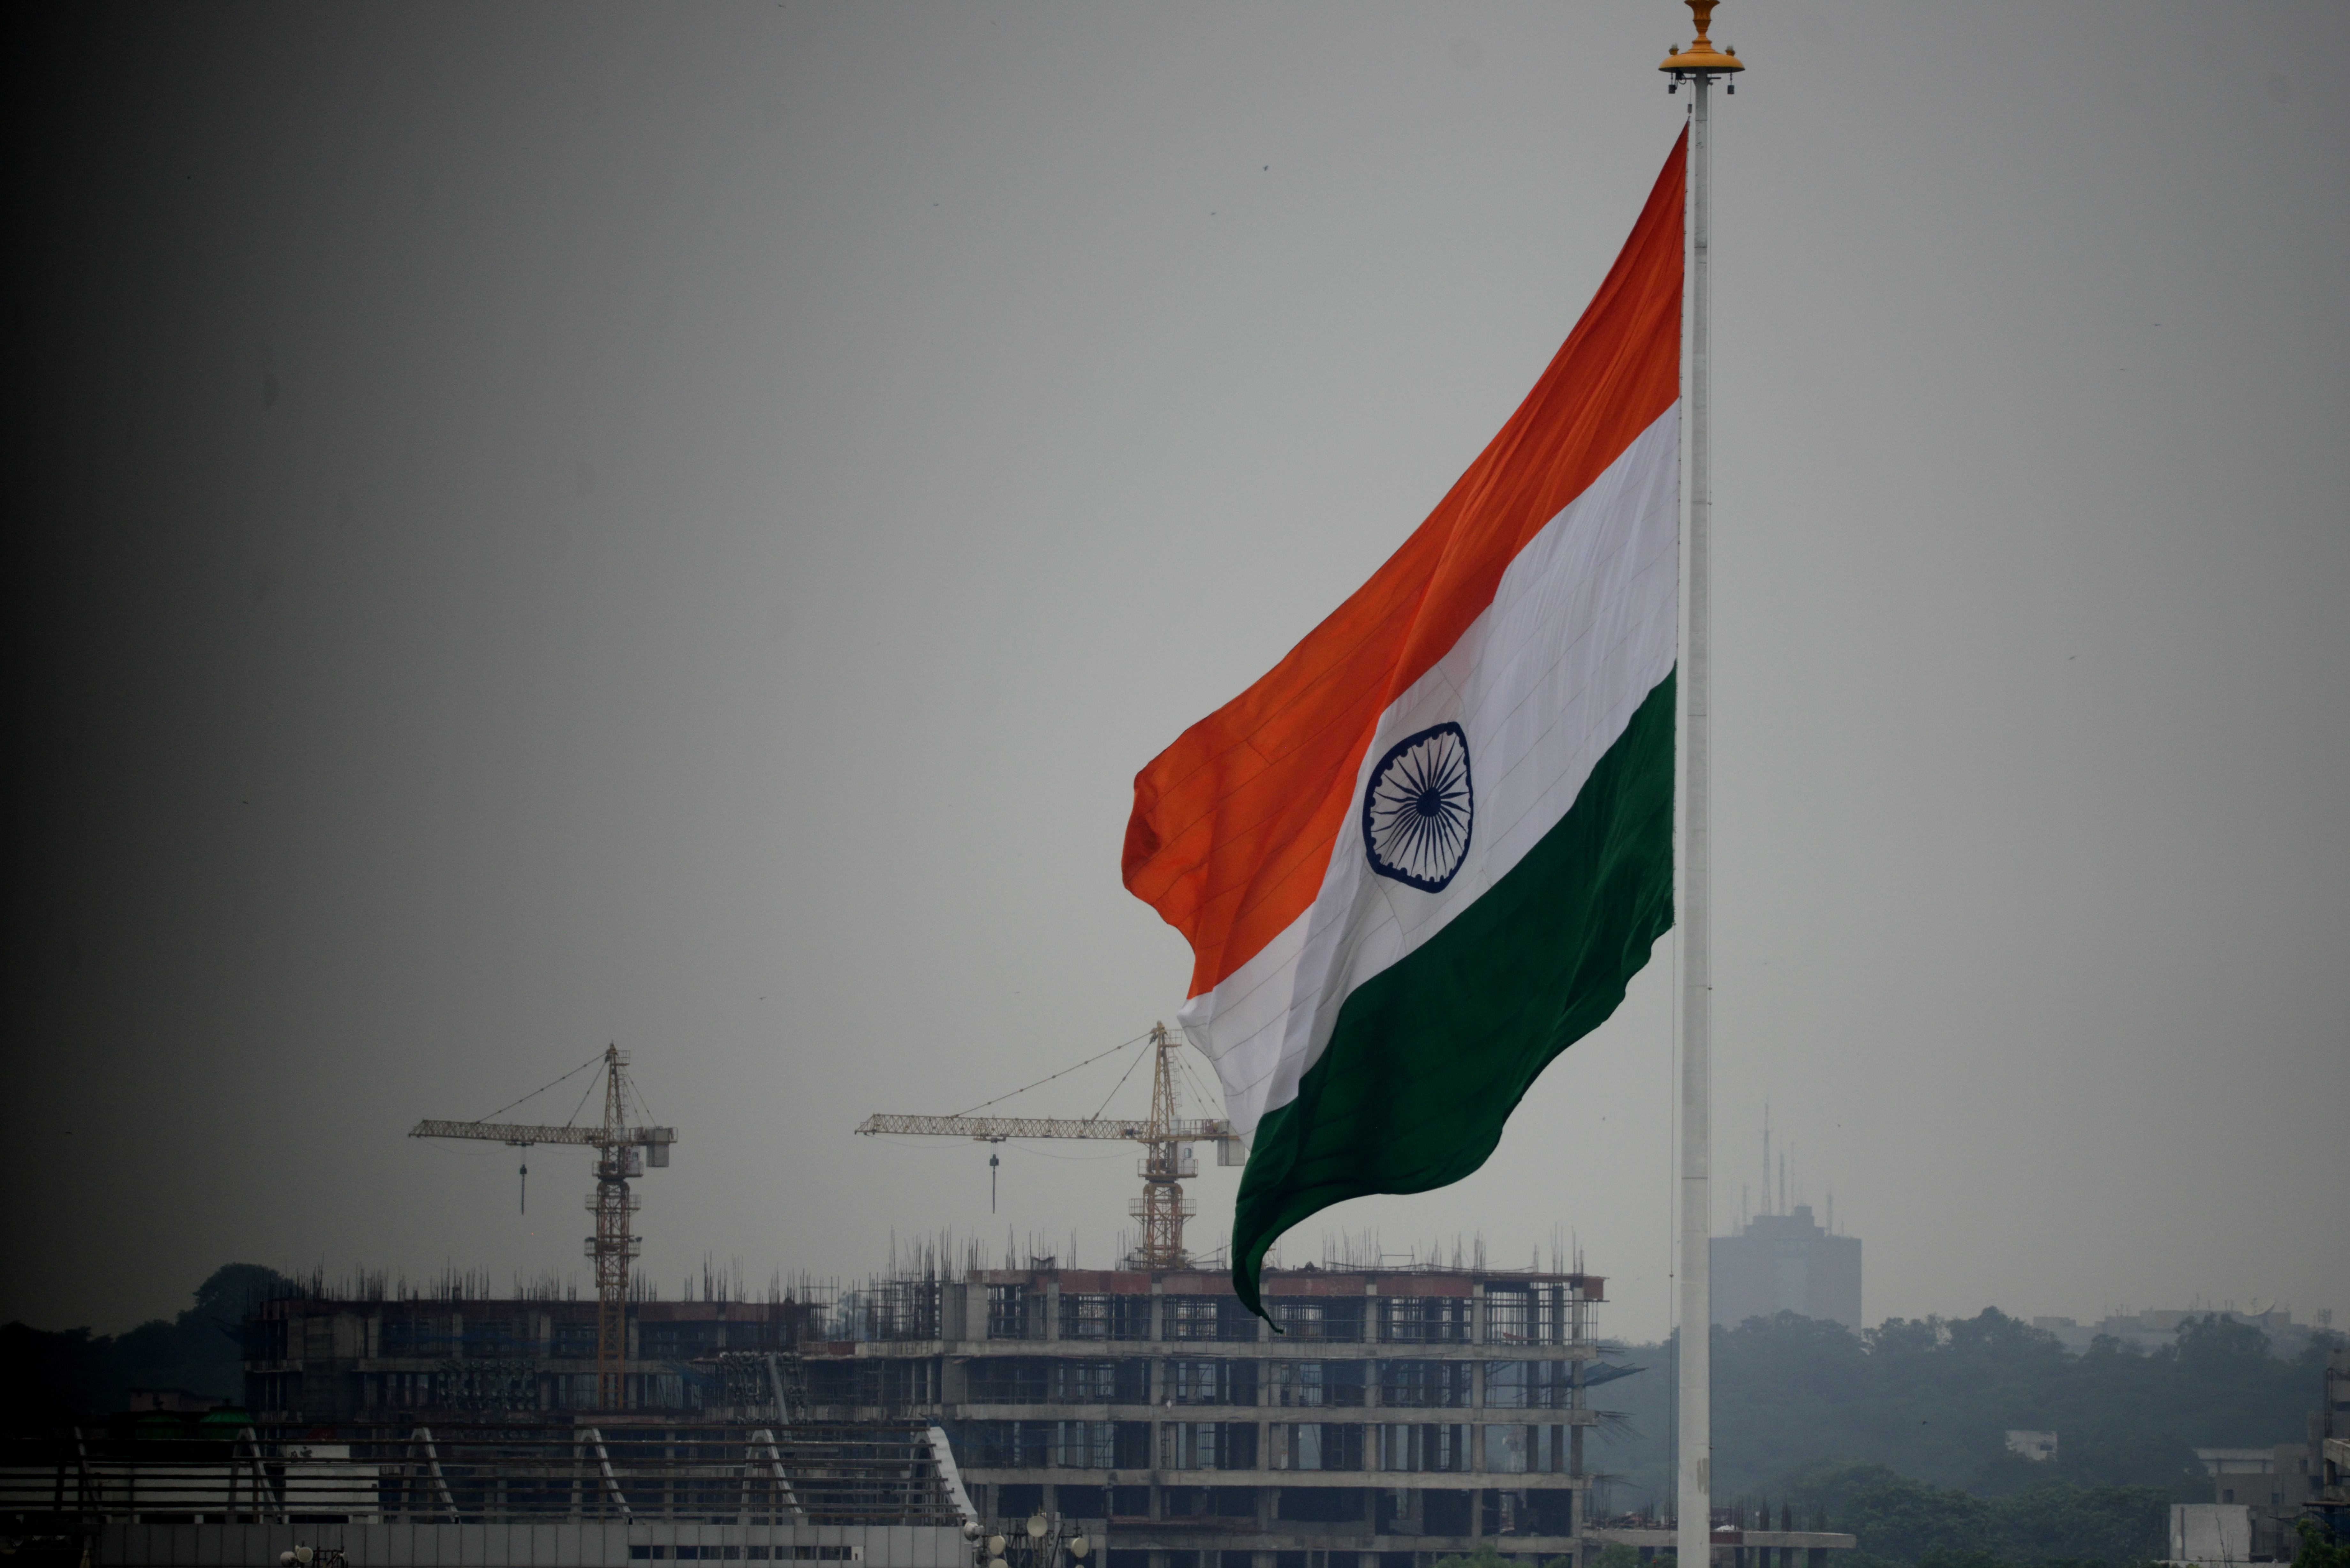 Indian national flag at Central Park, Connaught Place on August 8, 2014 in New Delhi, India.